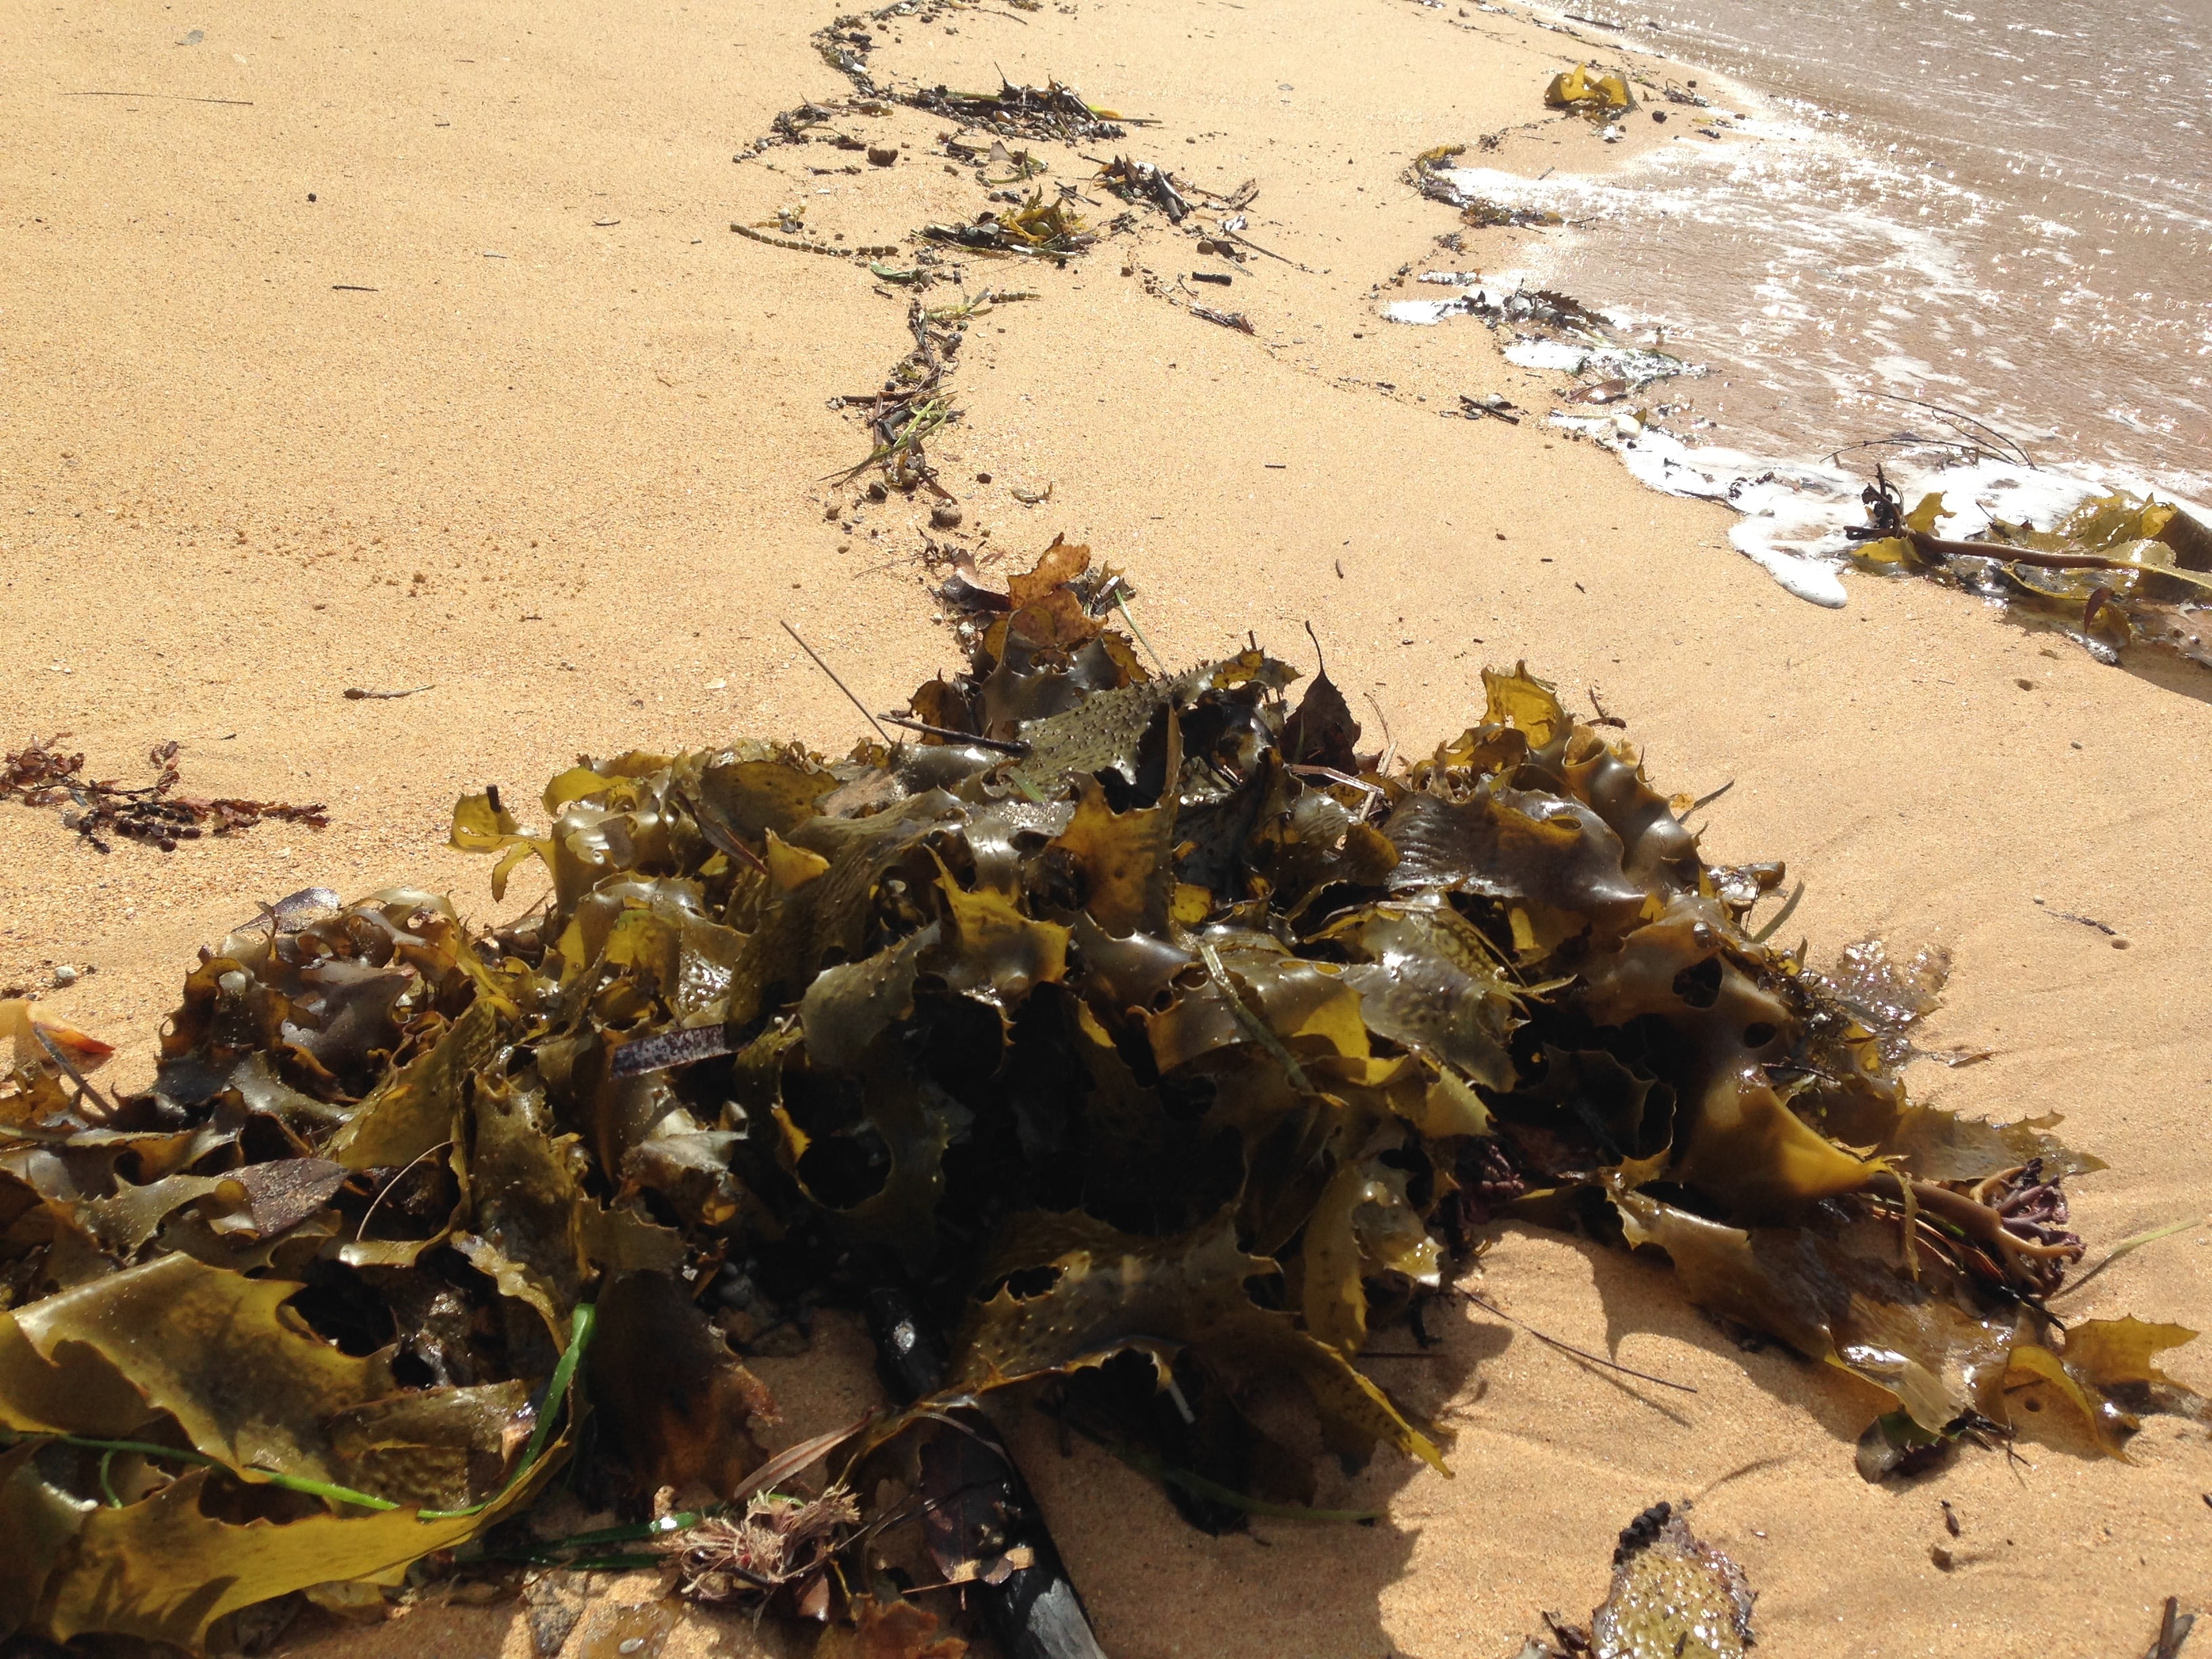 Slippery, slimy rolls of seaweed at Maitland Beach. Do they add or subtract to your experience? Photo: Janna Schreier